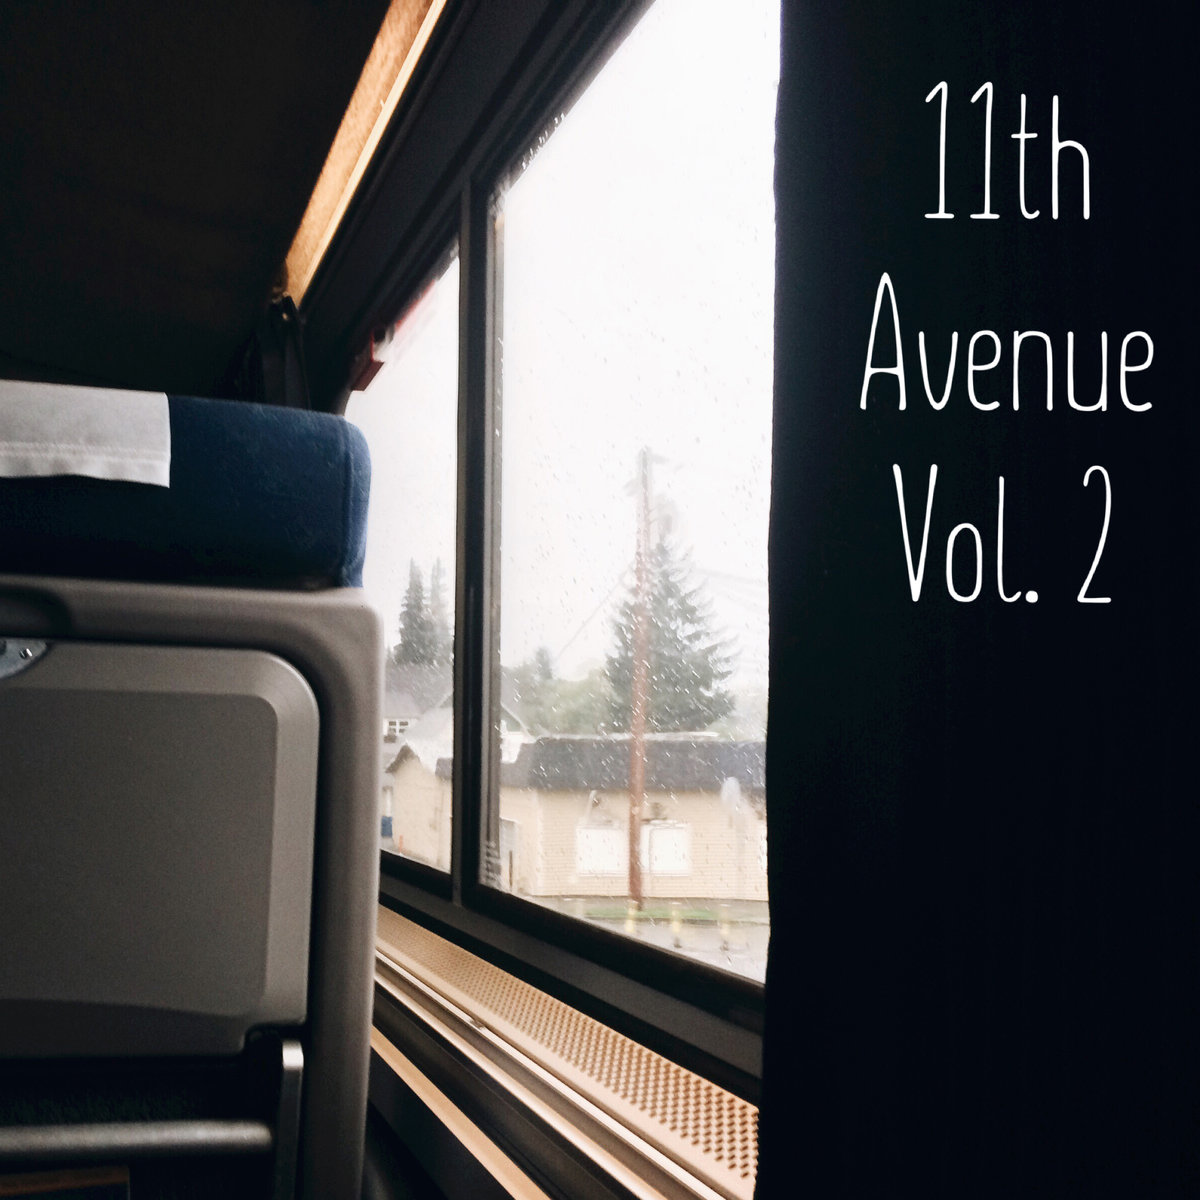 Harlow's Monkeys - The Burrito Song @ '11th Avenue Vol. 2' album (11th ave records, 11thaverecords 11th avenue)